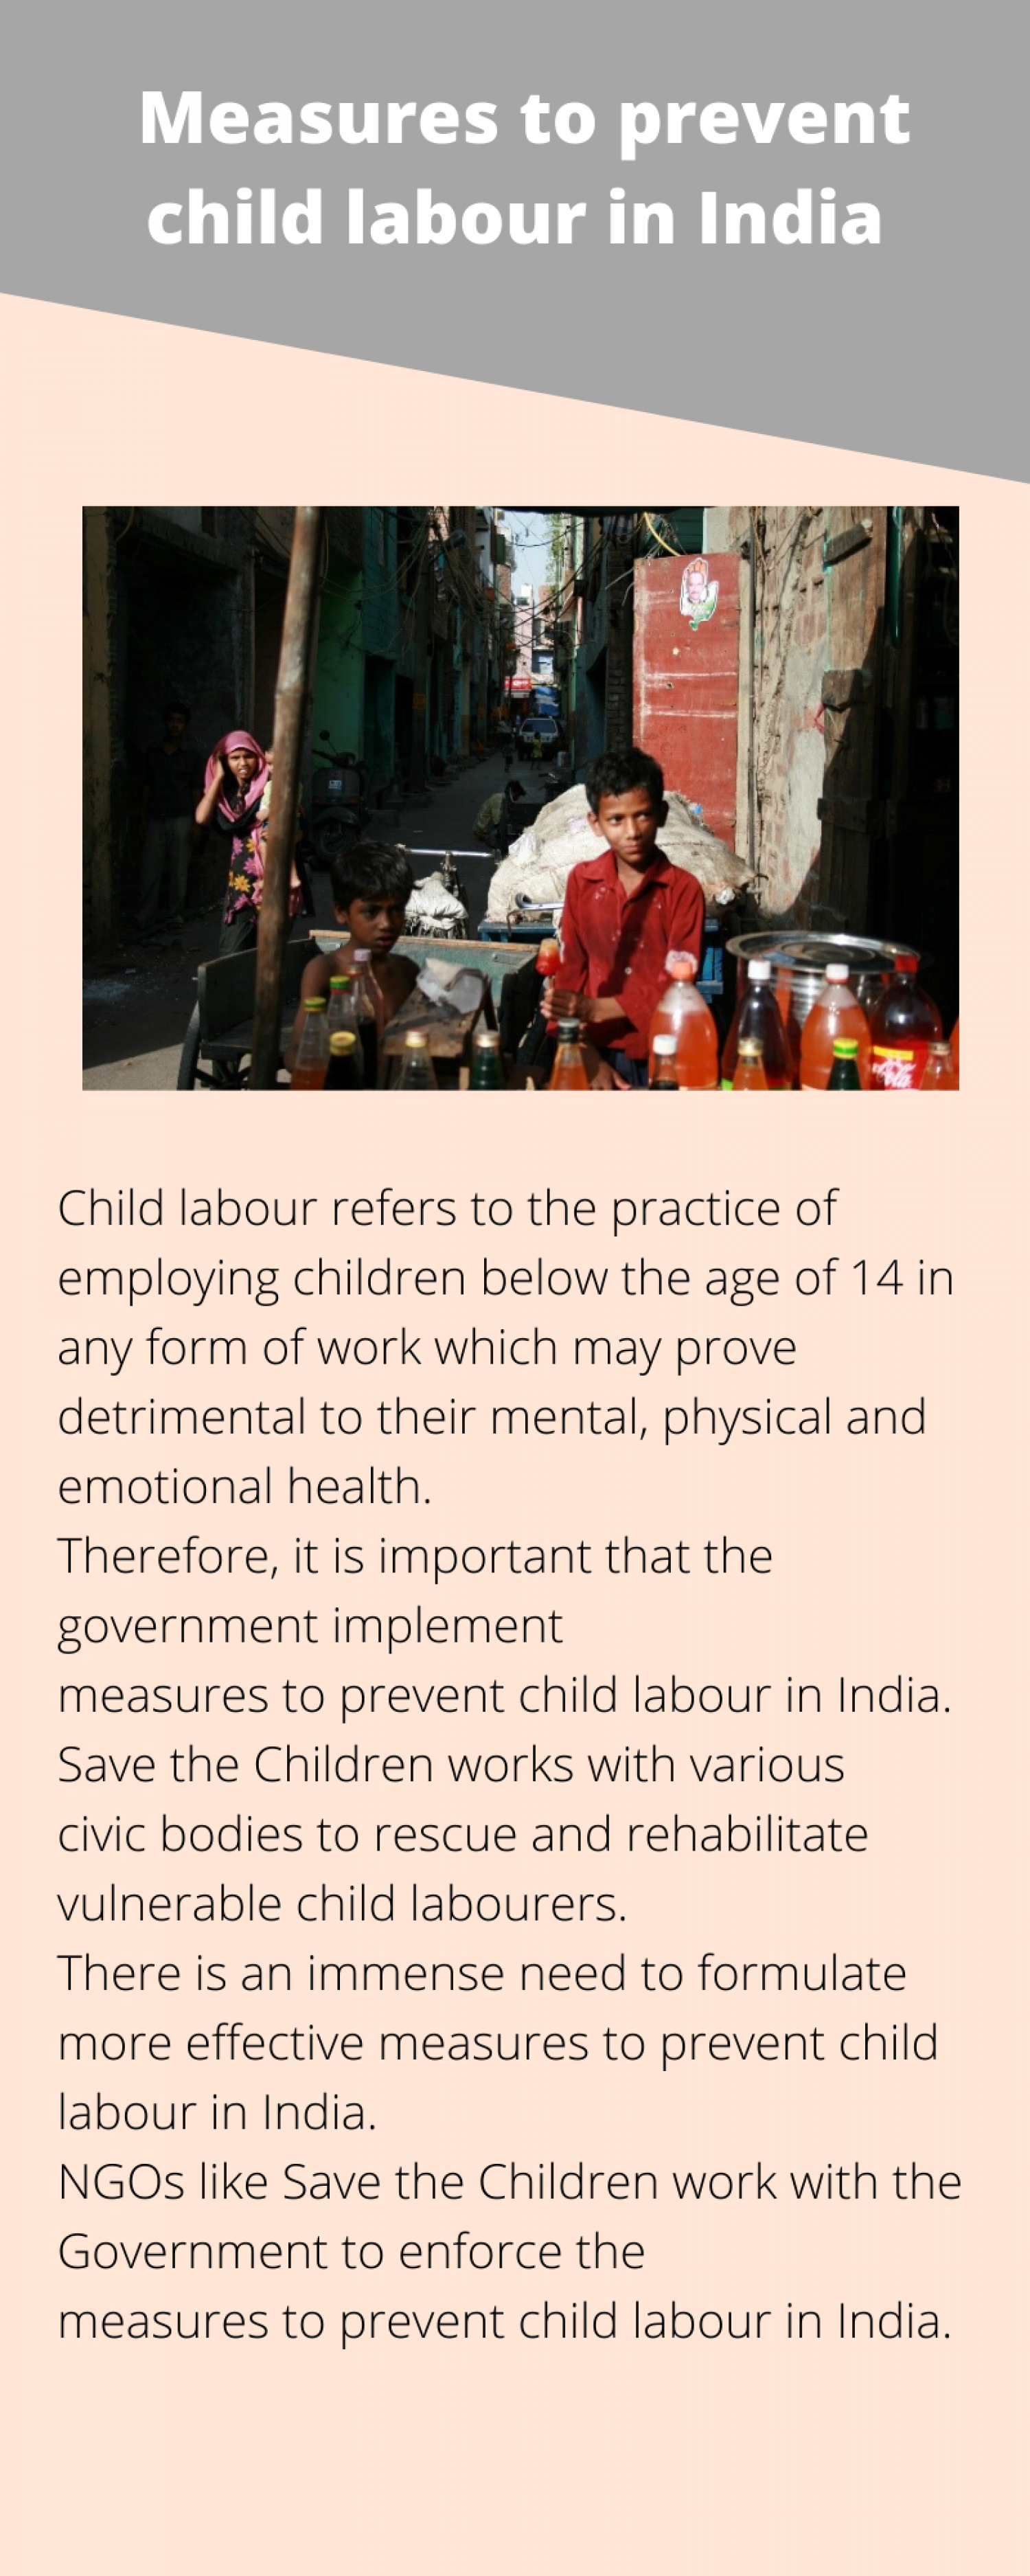 Measures to prevent child labour in India Infographic